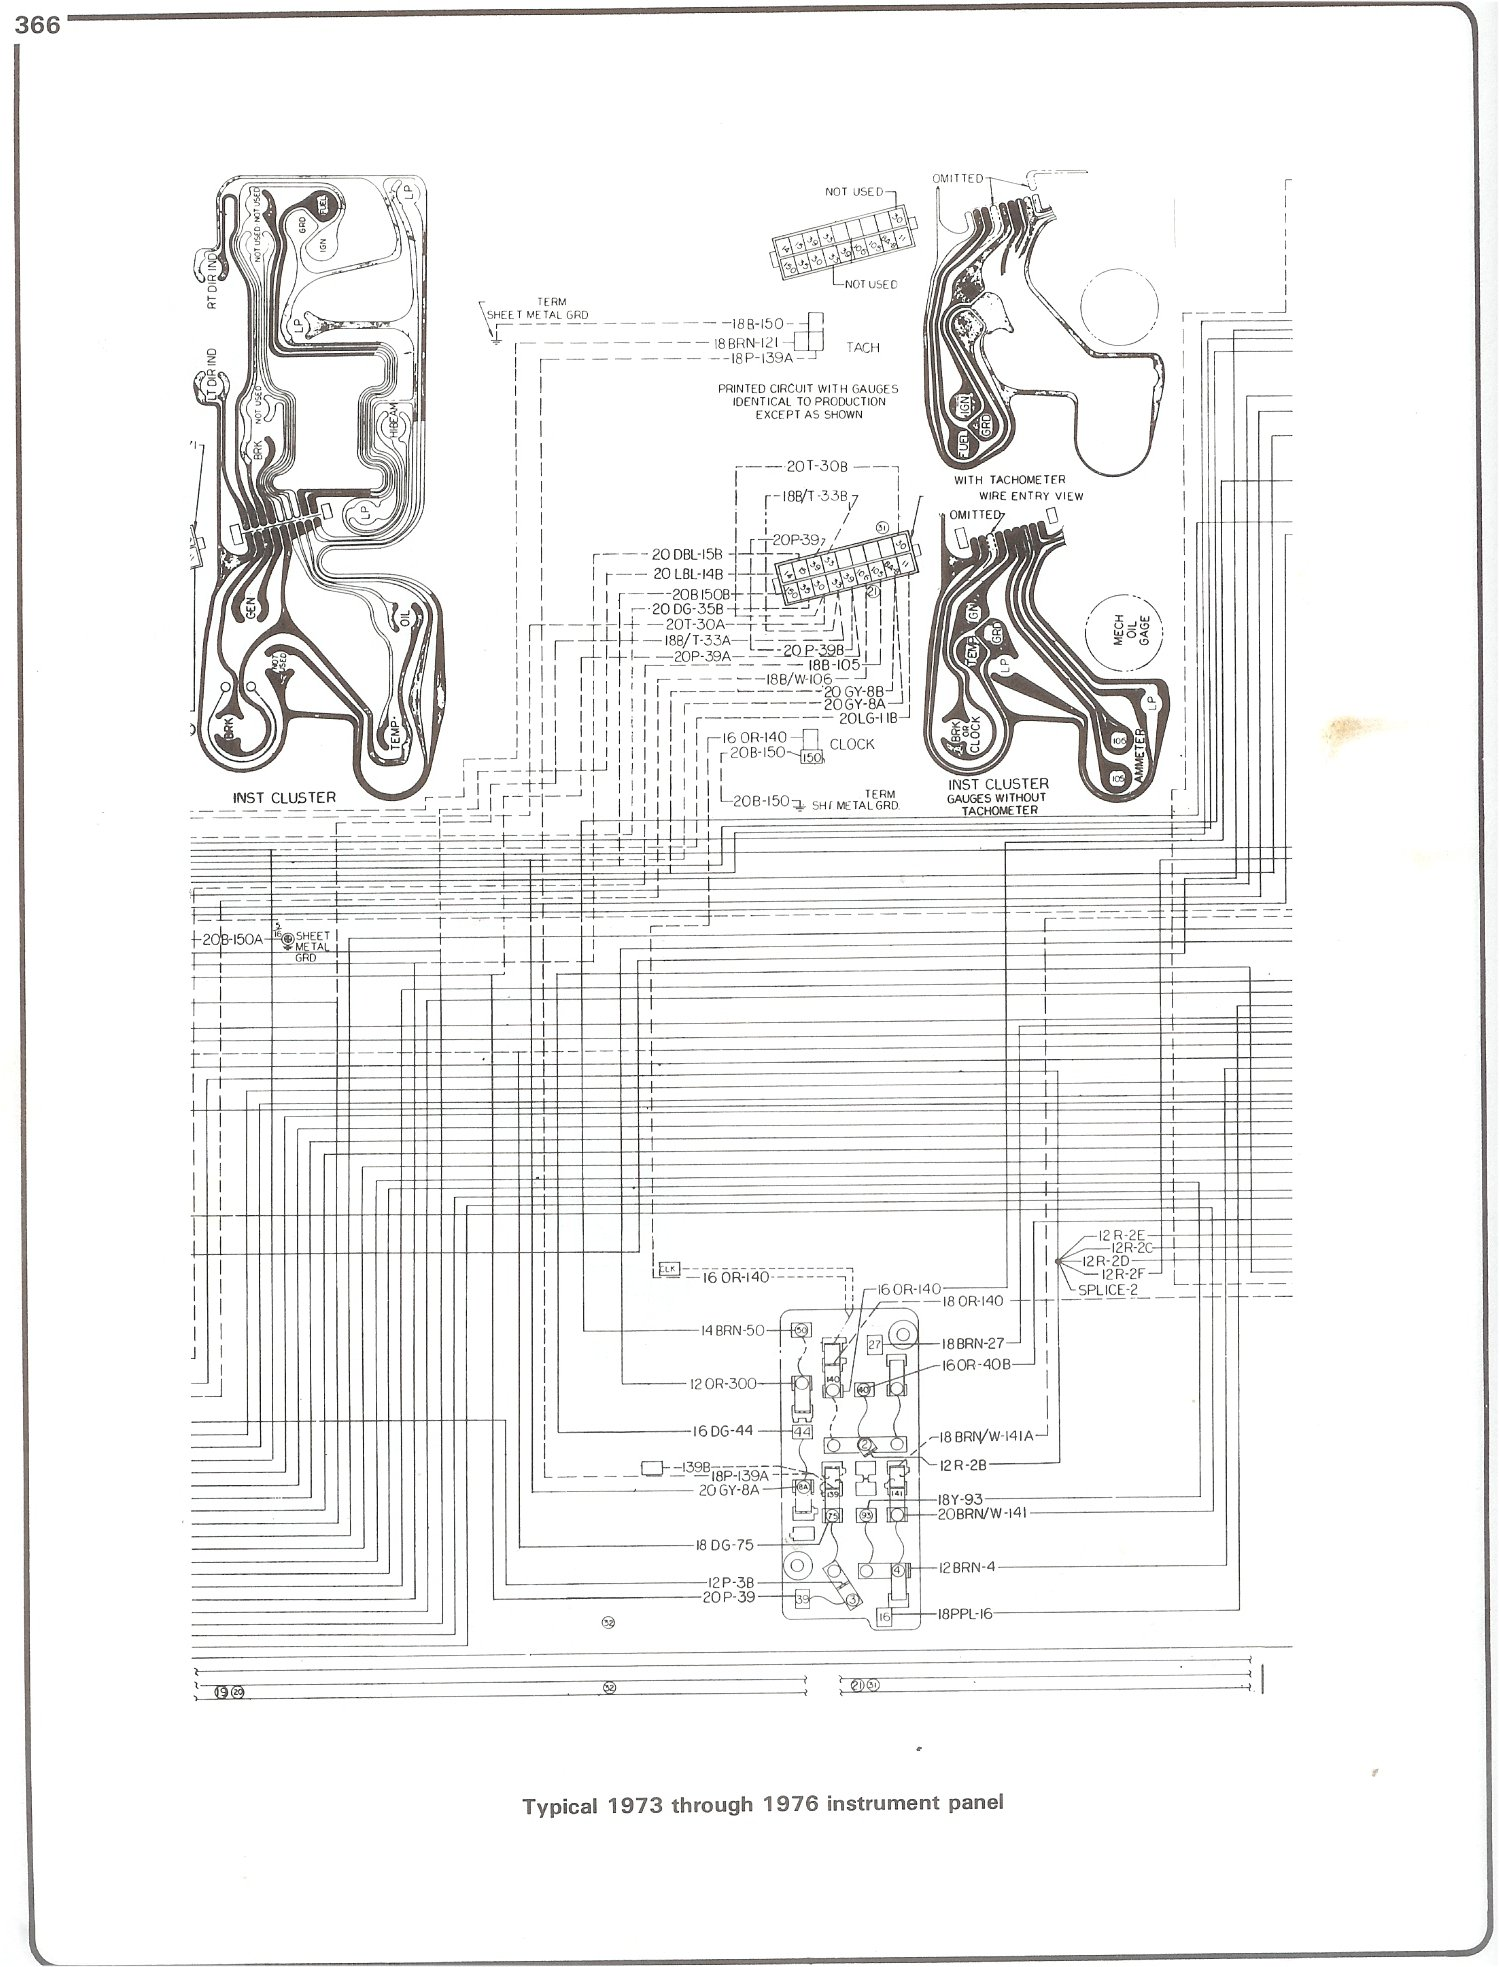 73 76_instrument complete 73 87 wiring diagrams 1999 Suburban Wiring Diagram at virtualis.co